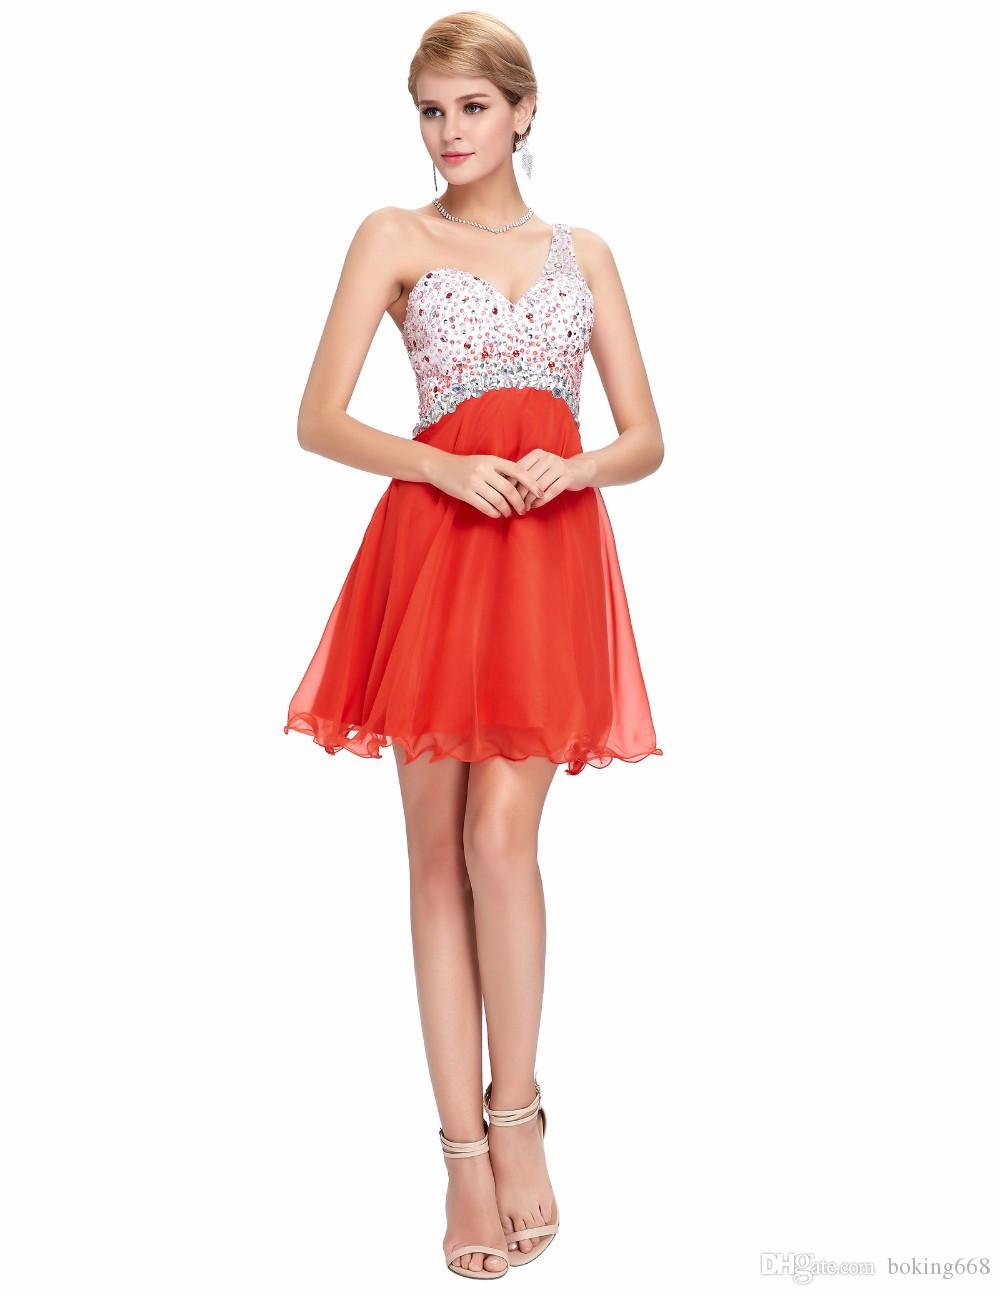 d7dbe937f25f5 Short prom dresses orange Cocktail Dresses 2016 short summer dresses  Beading sexy sweetheart elegant Strapless dress party gowns